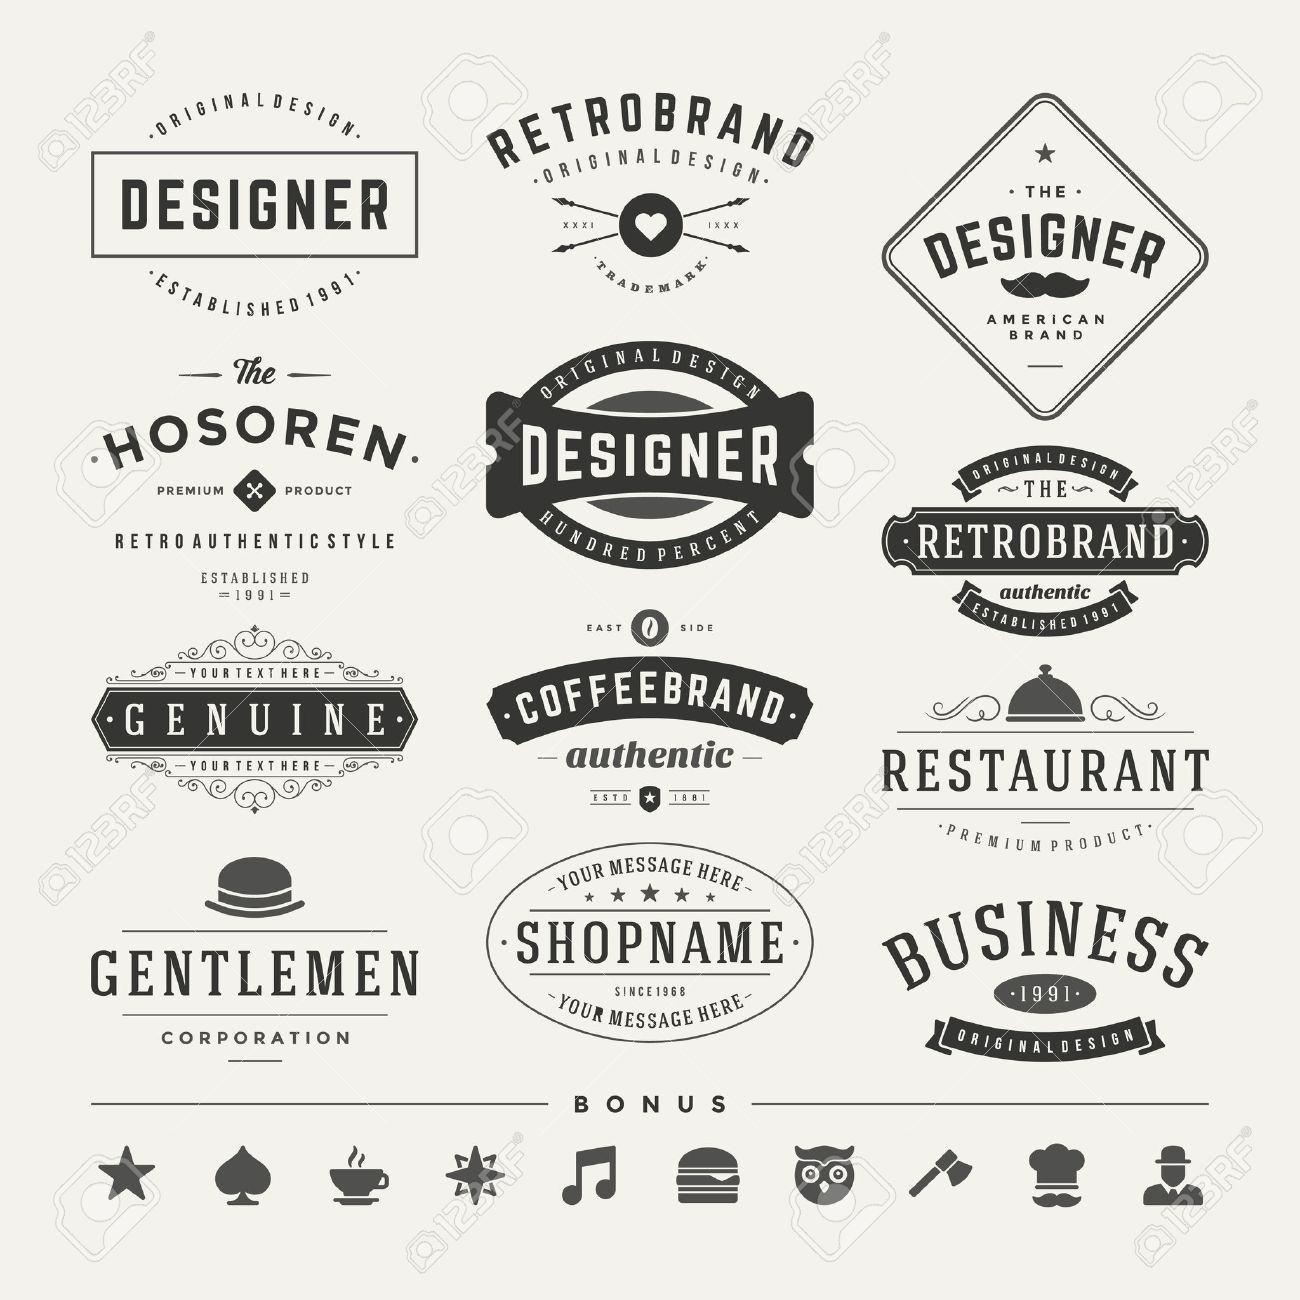 Retro Vintage Insignias or Logotypes set. Vector design elements, business signs, logos, identity, labels, badges and objects. - 37356531